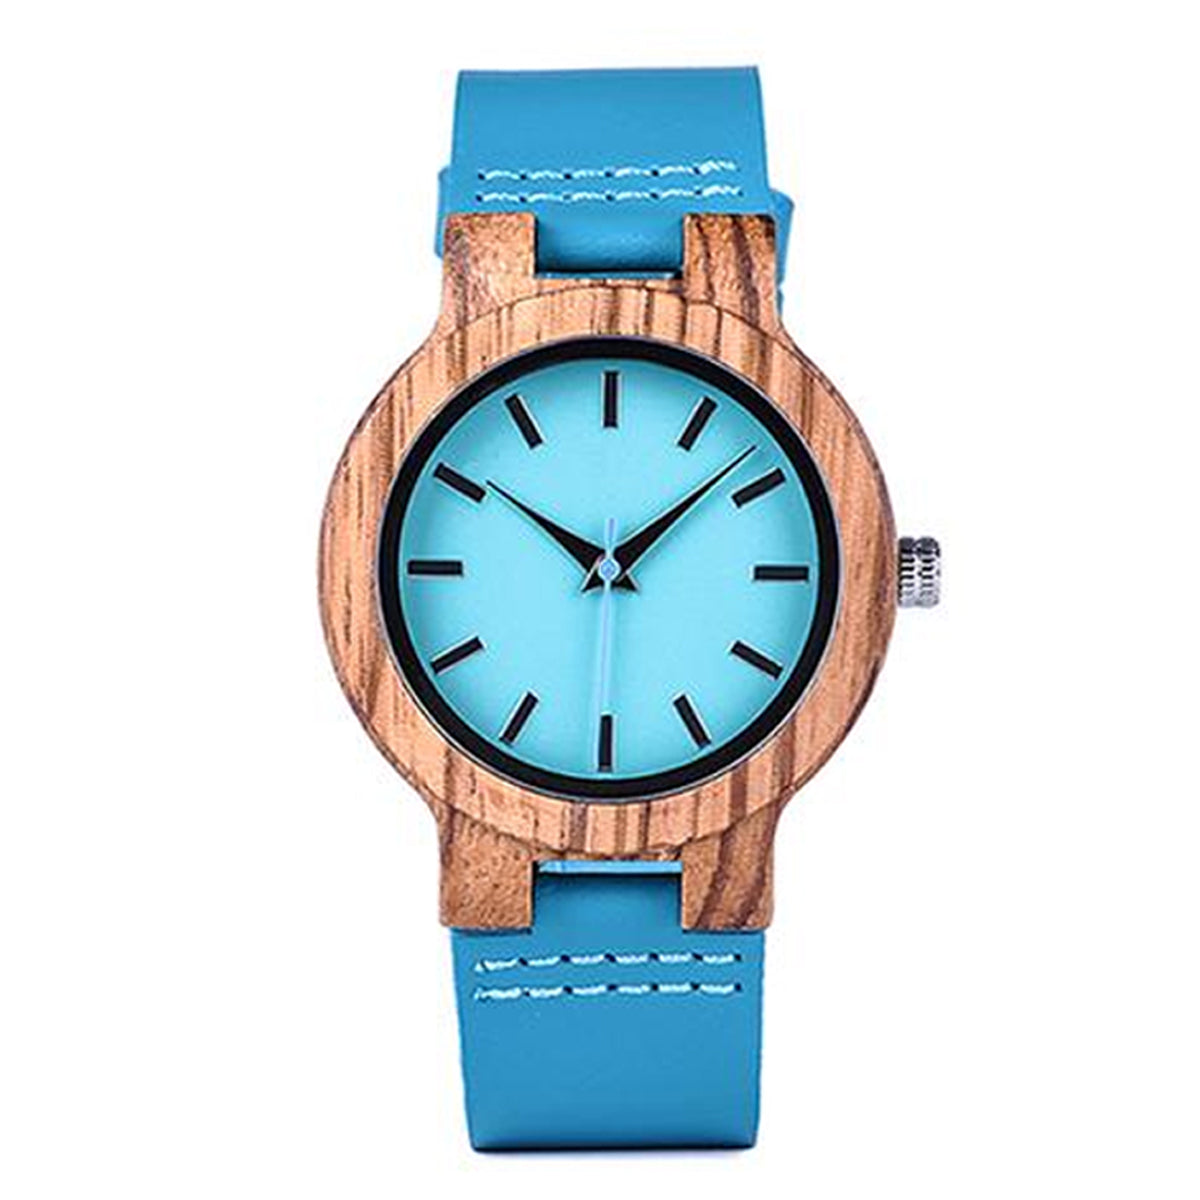 Handcrafted Analog Bamboo Wrist Watch with Genuine Leather Strap